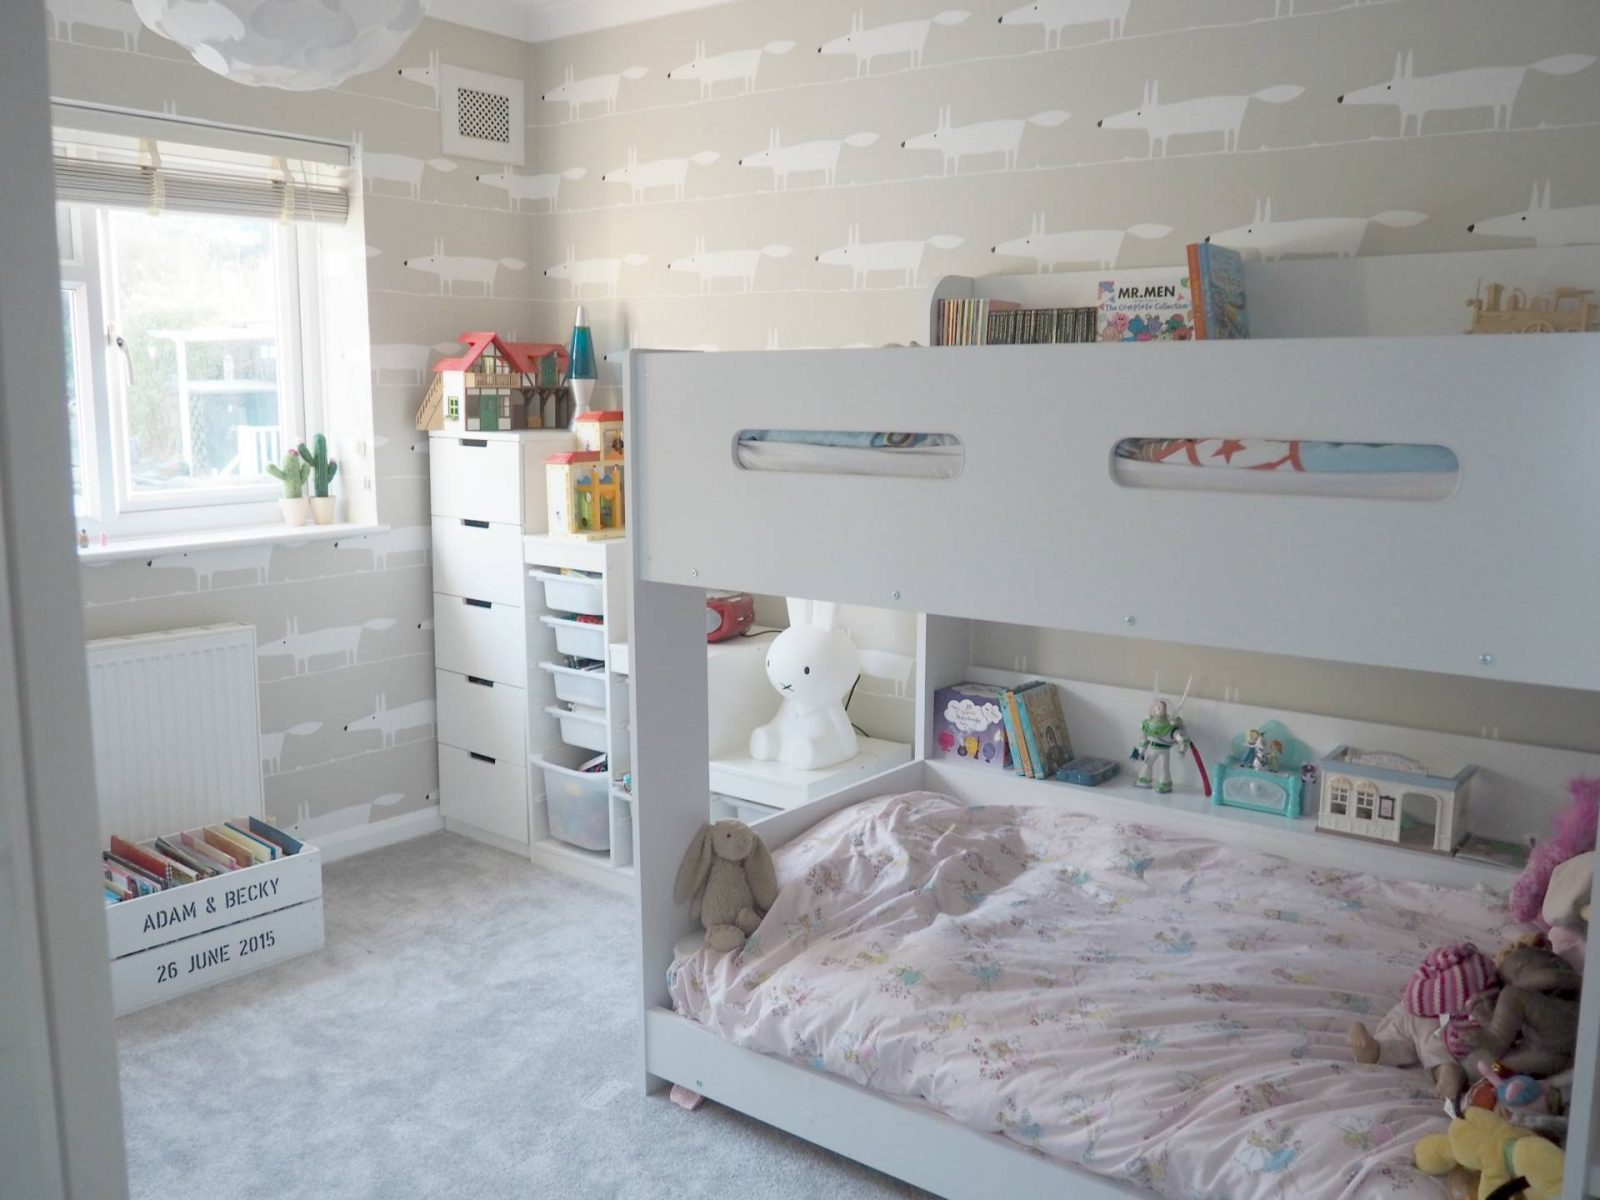 A Unisex shared bedroom